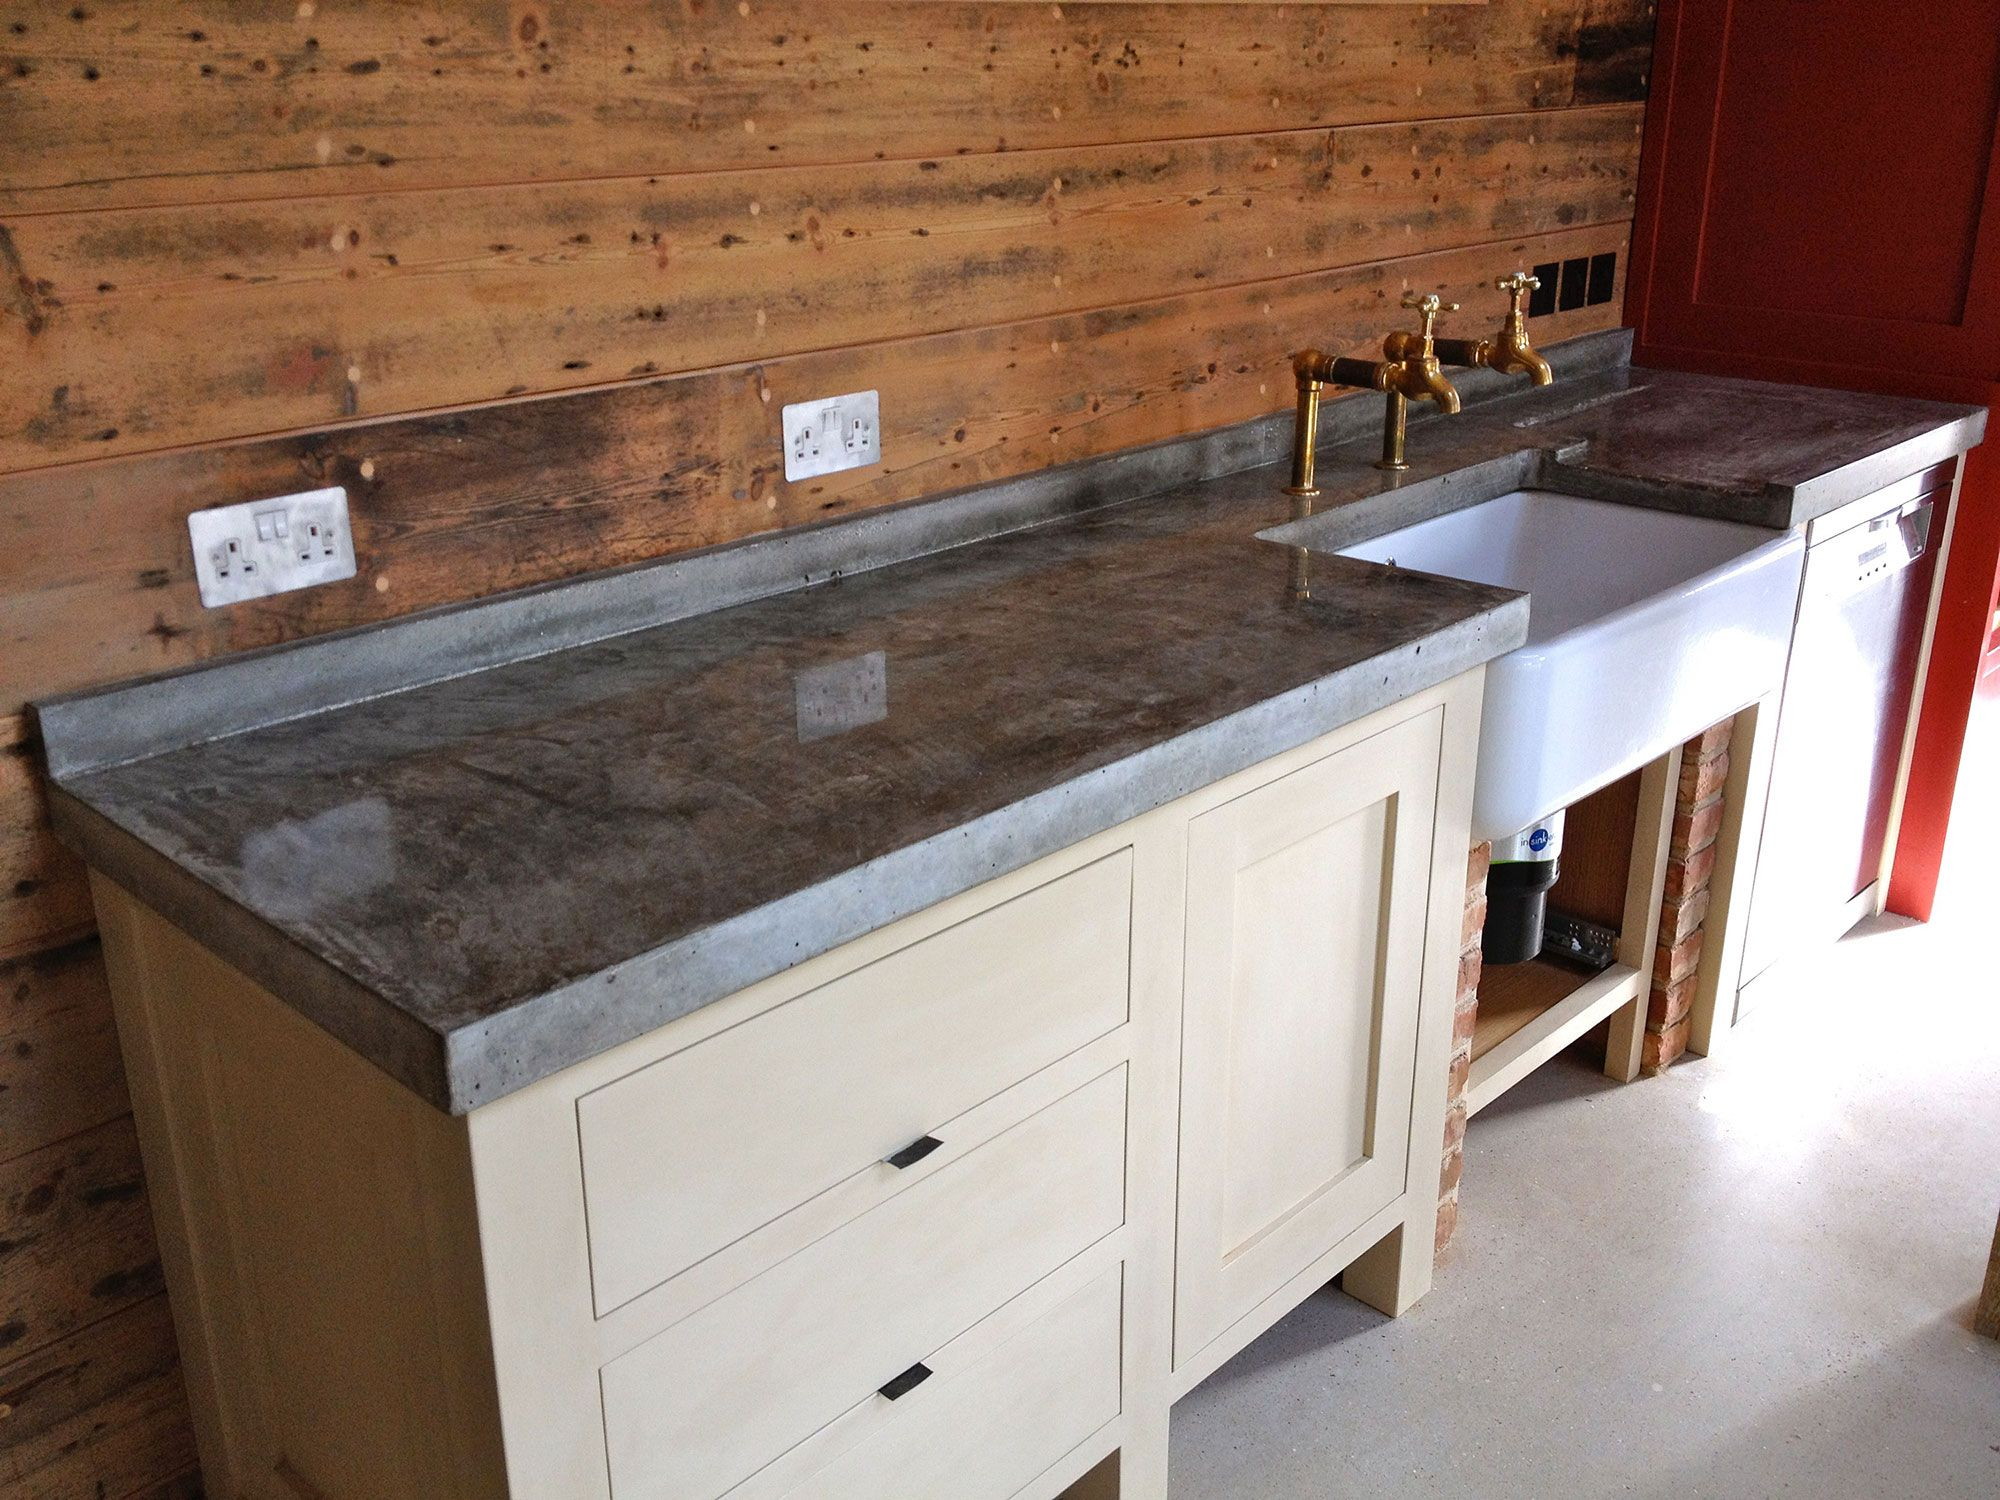 Rustic Kitchen With Wooden Backsplash And Concrete Countertop With ...